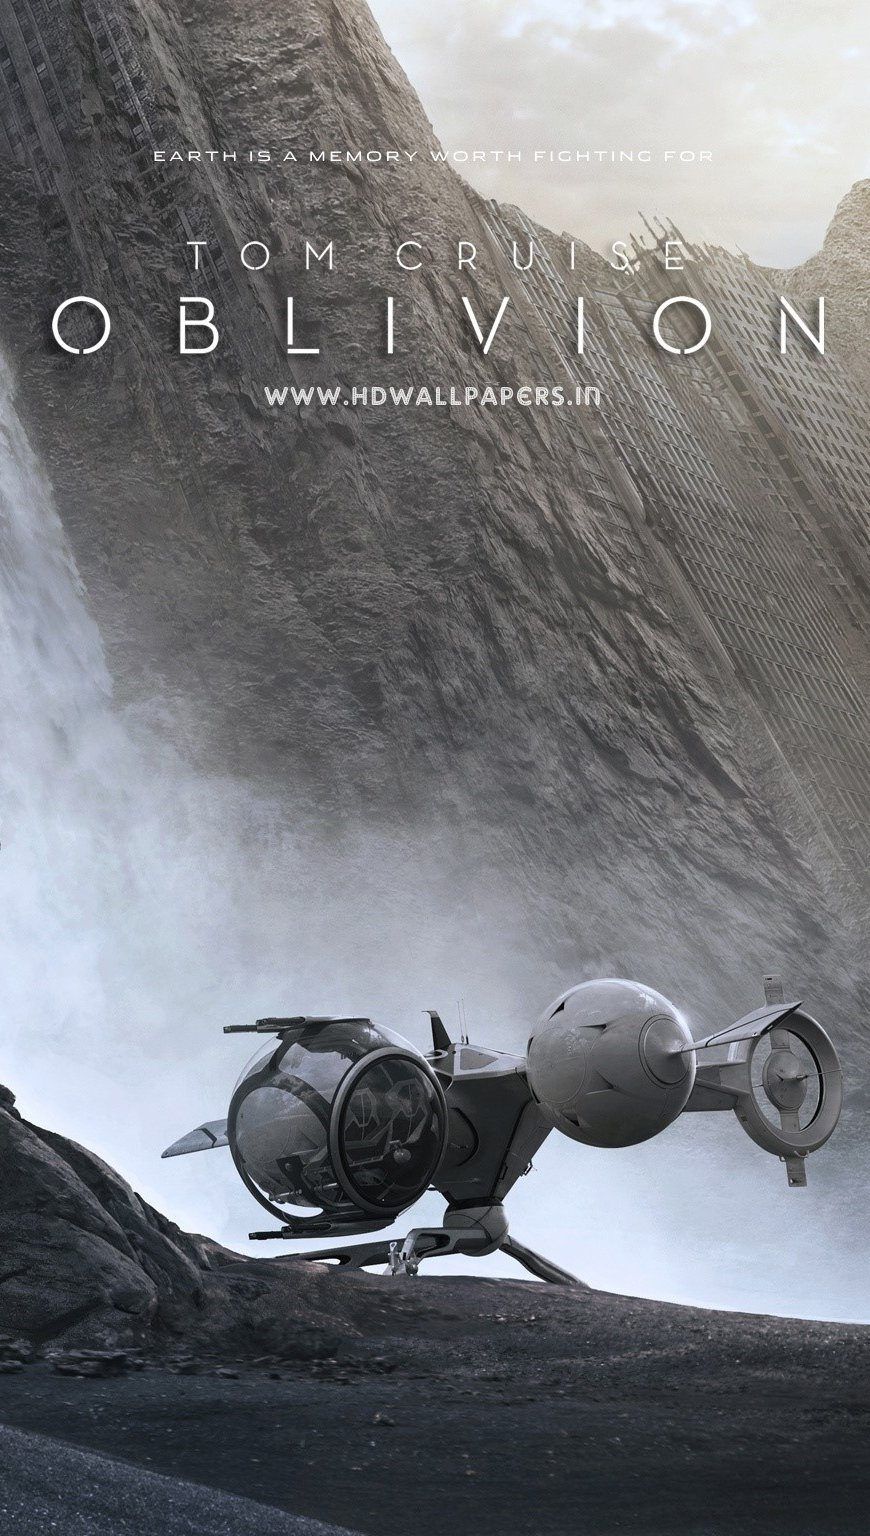 Wallpaper Tom Cruise in the movie Oblivion Vertical